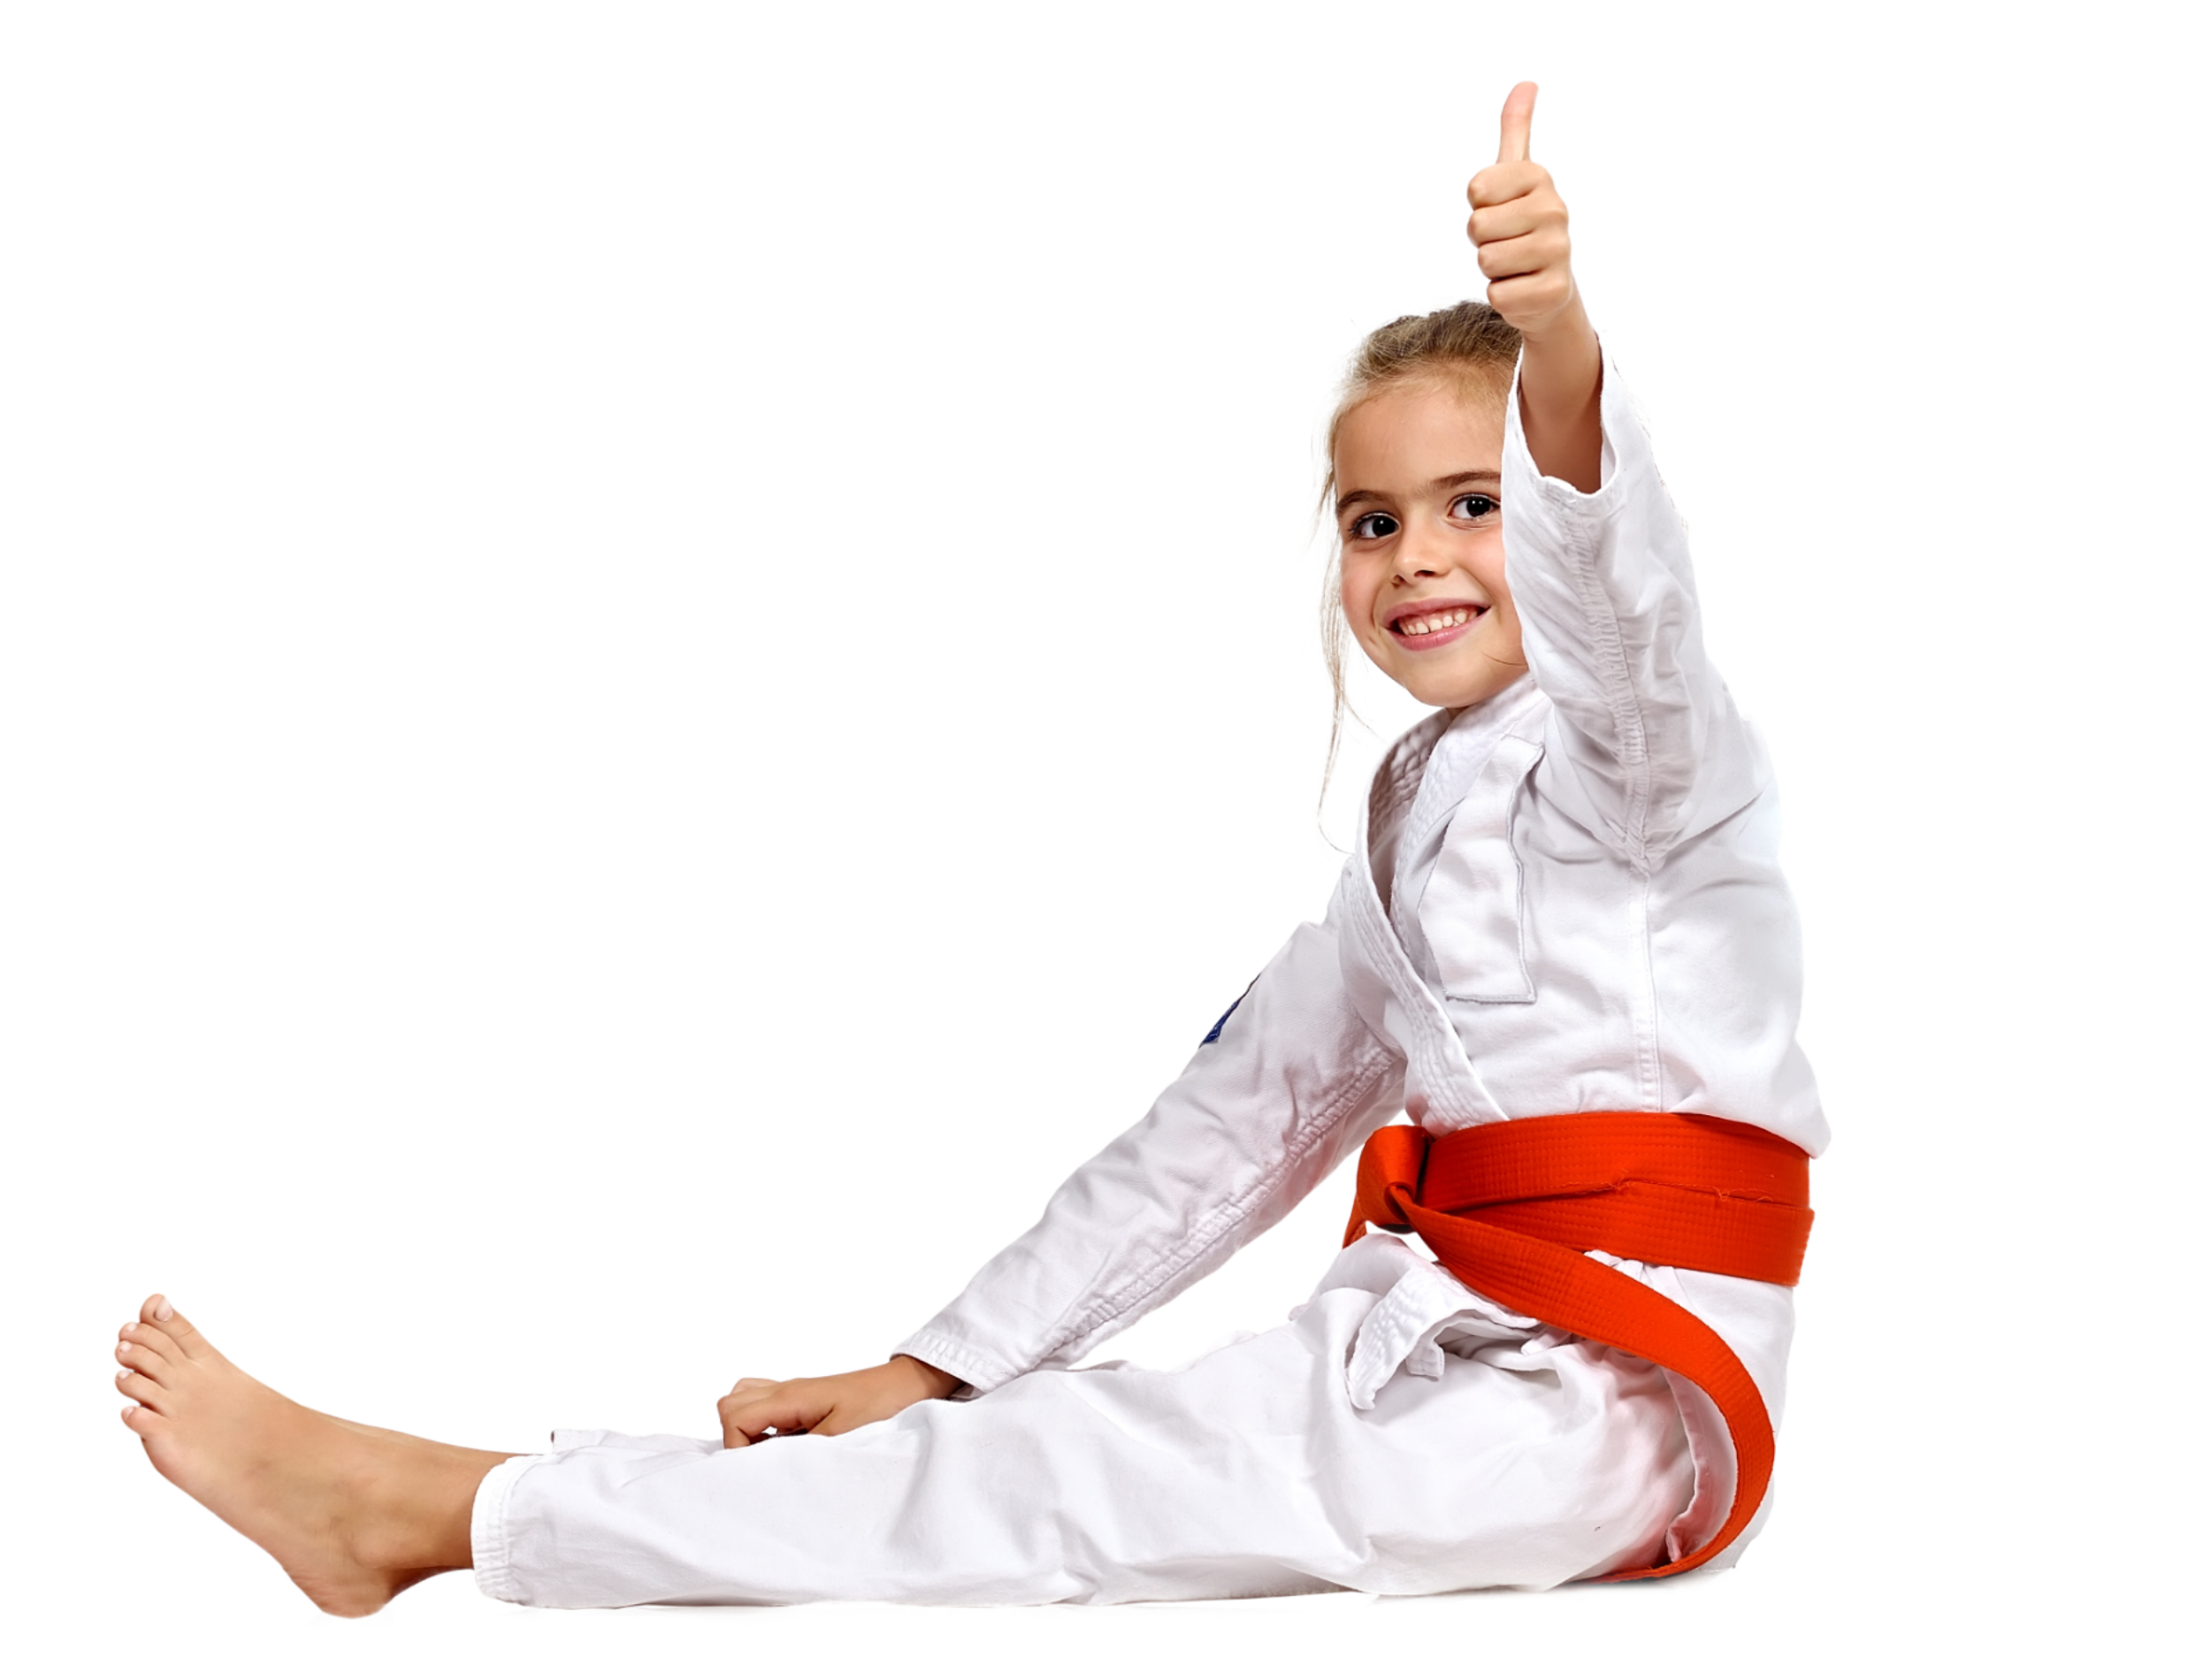 Karate Girl Thumbs Up.png